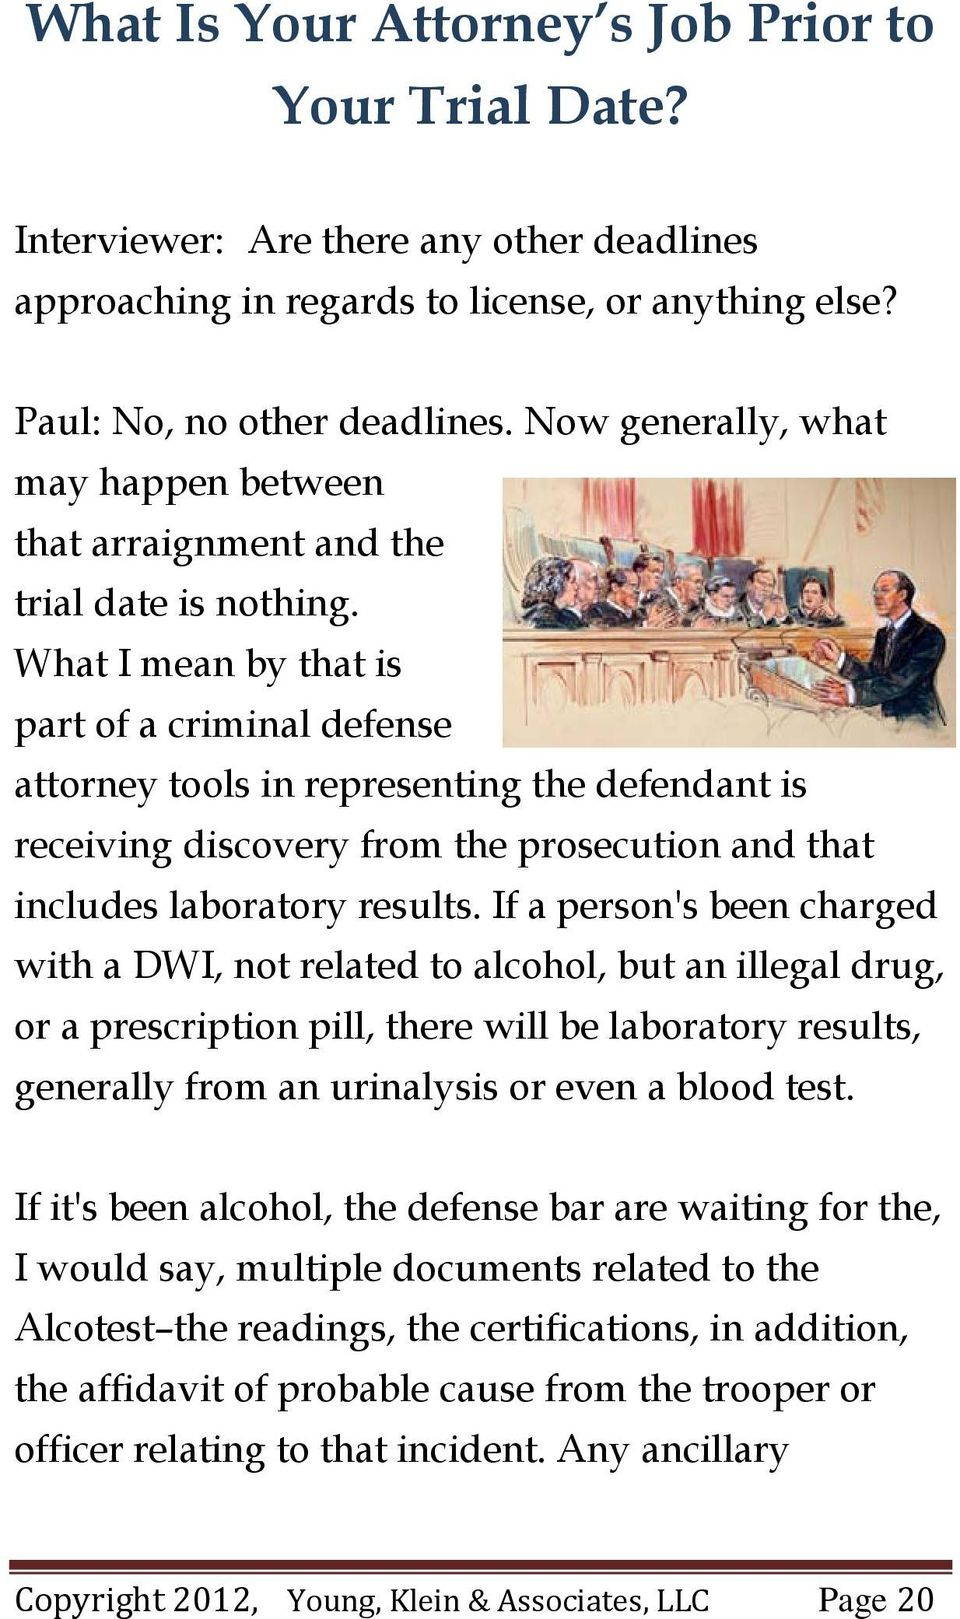 What I mean by that is part of a criminal defense attorney tools in representing the defendant is receiving discovery from the prosecution and that includes laboratory results.